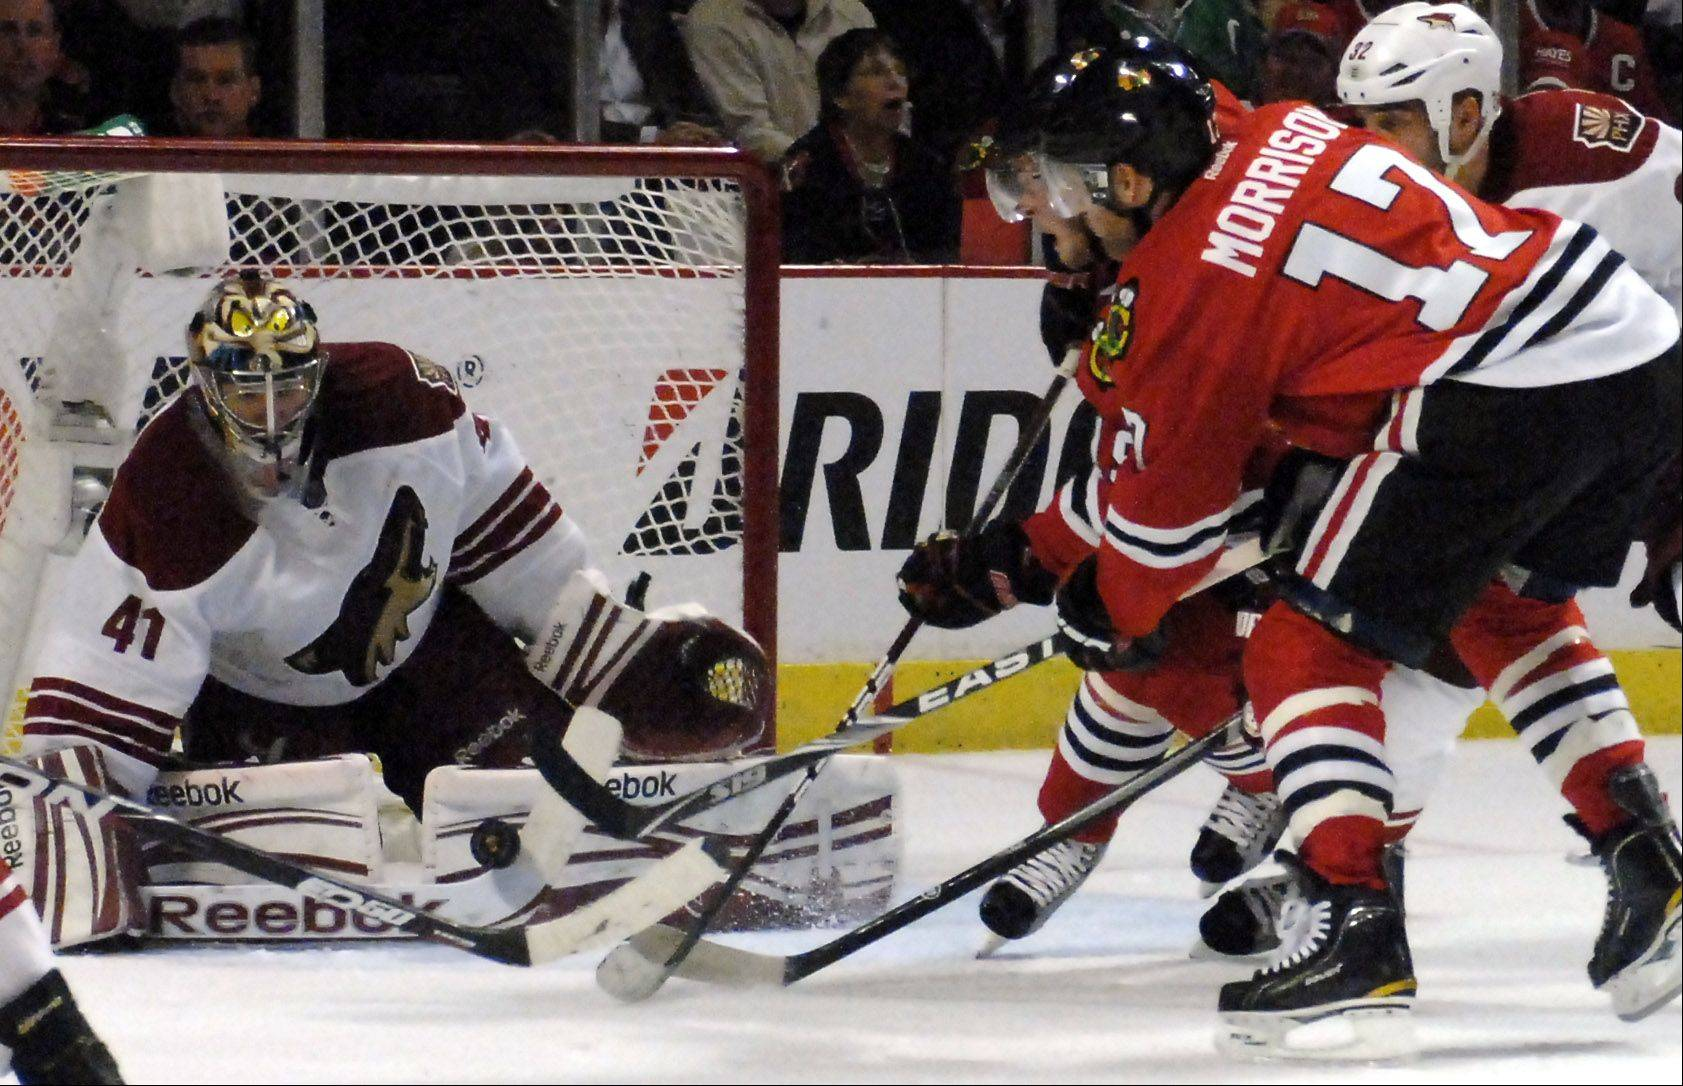 Phoenix Coyotes goalie Mike Smith blocks a shot by Chicago Blackhawks center Brendan Morrison.